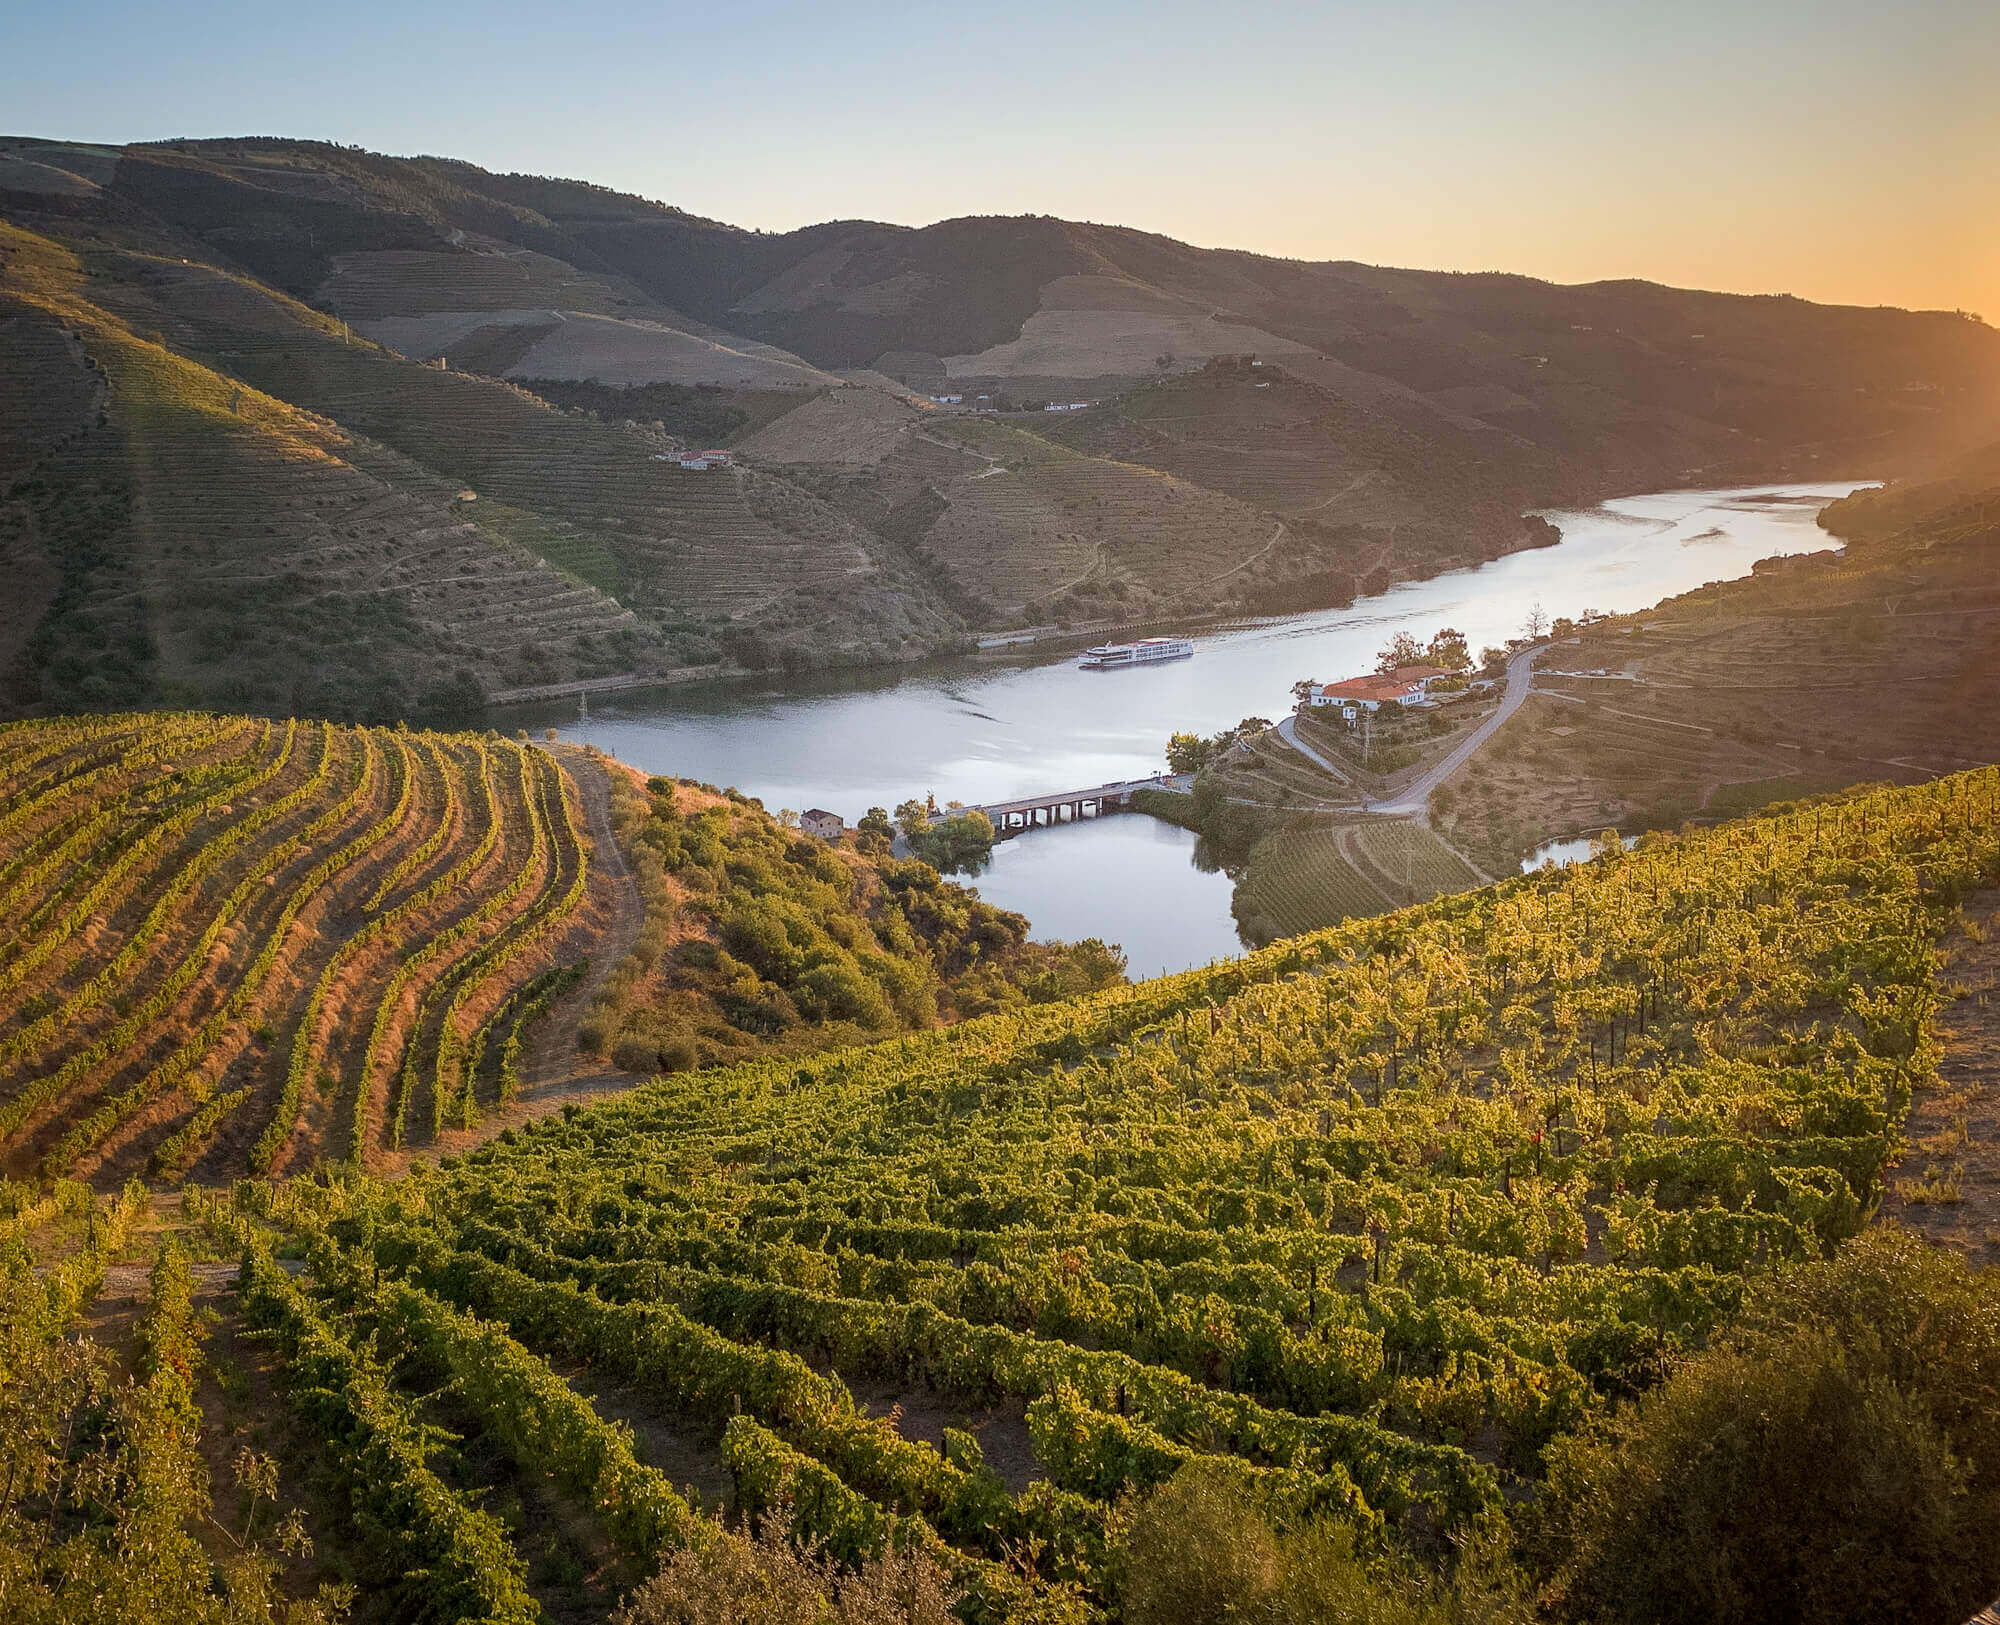 Vila Gale Douro river view